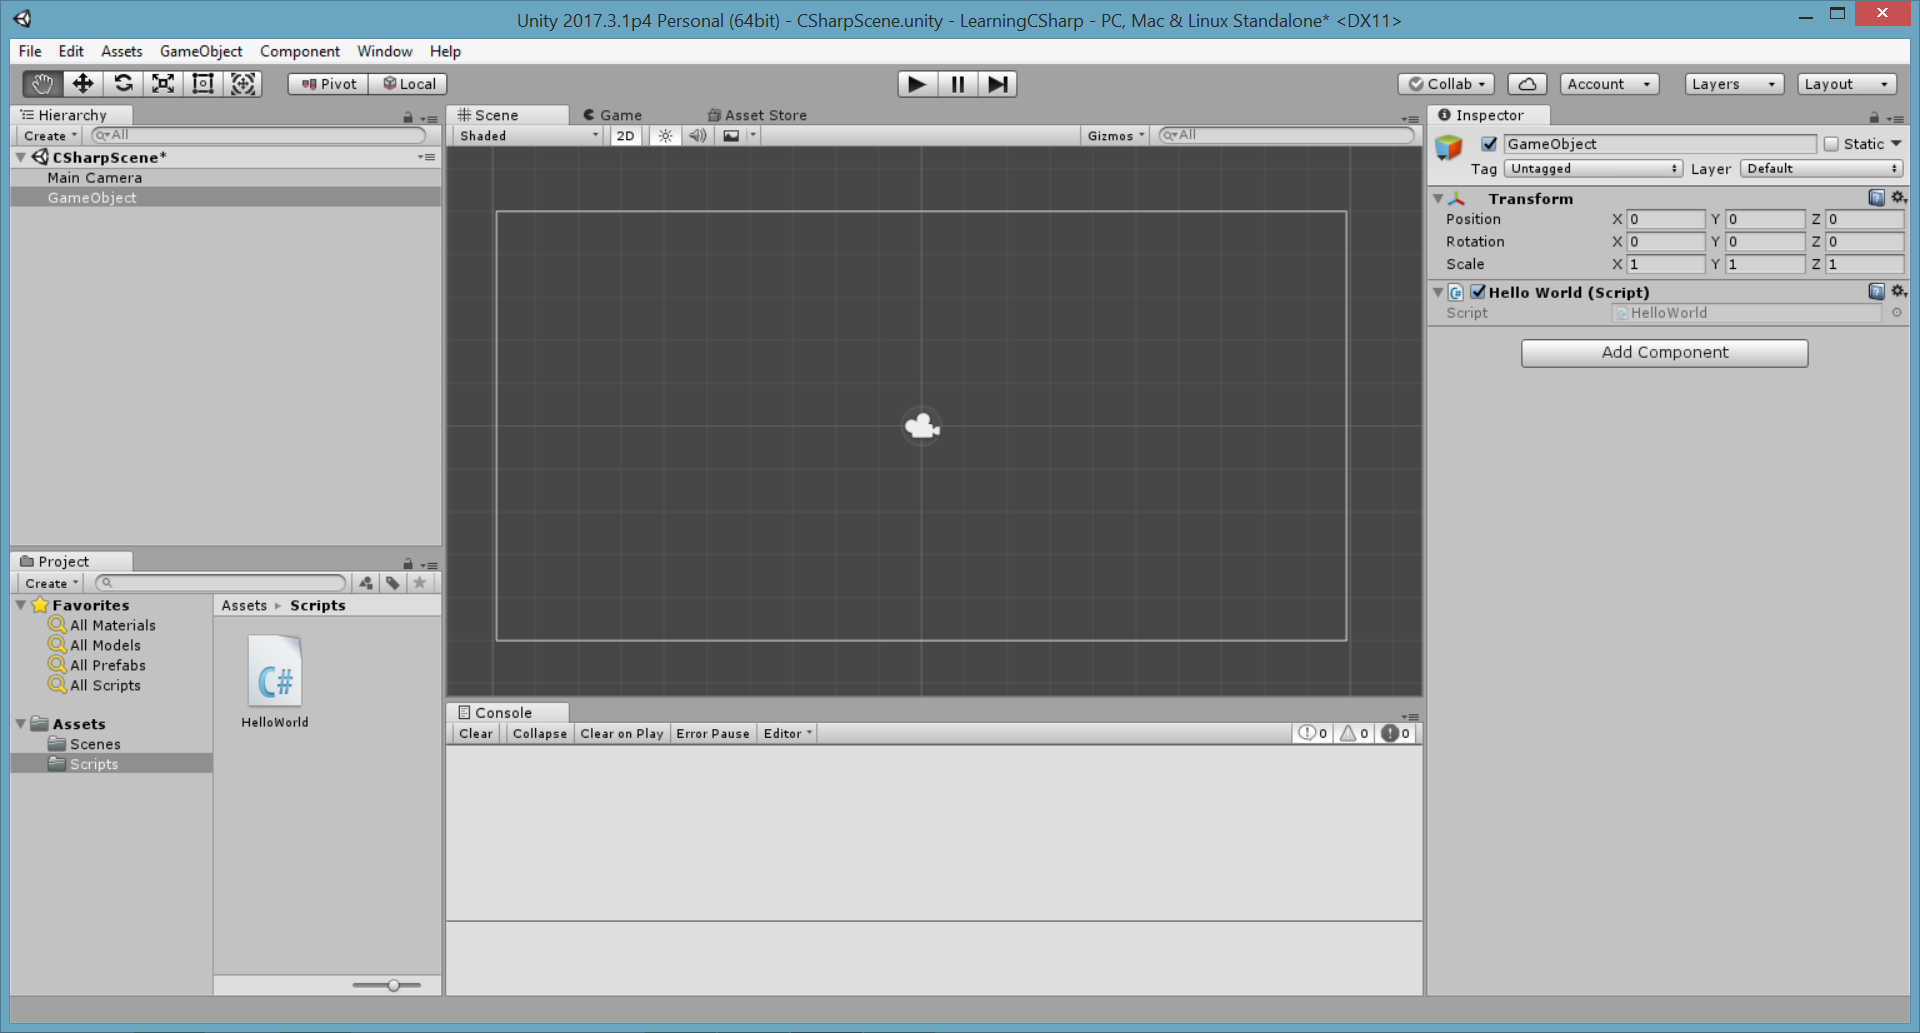 Unity Tutorial. C Sharp (C#). Unity Editor Interface Image from Ackosmic Games